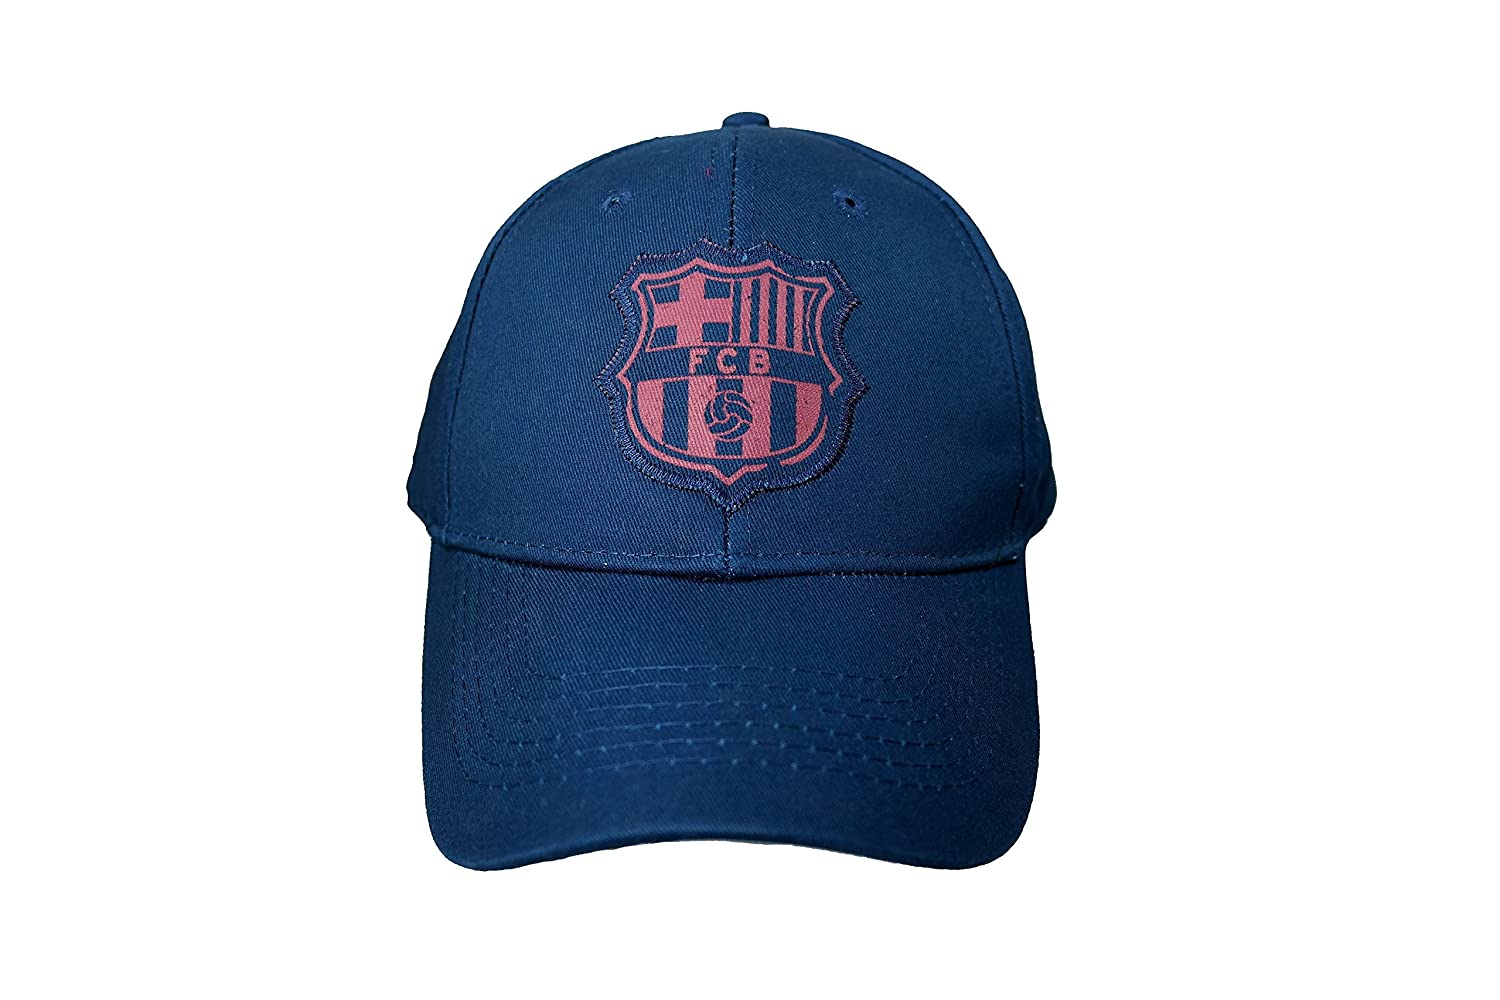 FC Barcelona Authentic Official Licensed Product Soccerキャップ – 04 – 3 B07BGTTFDP